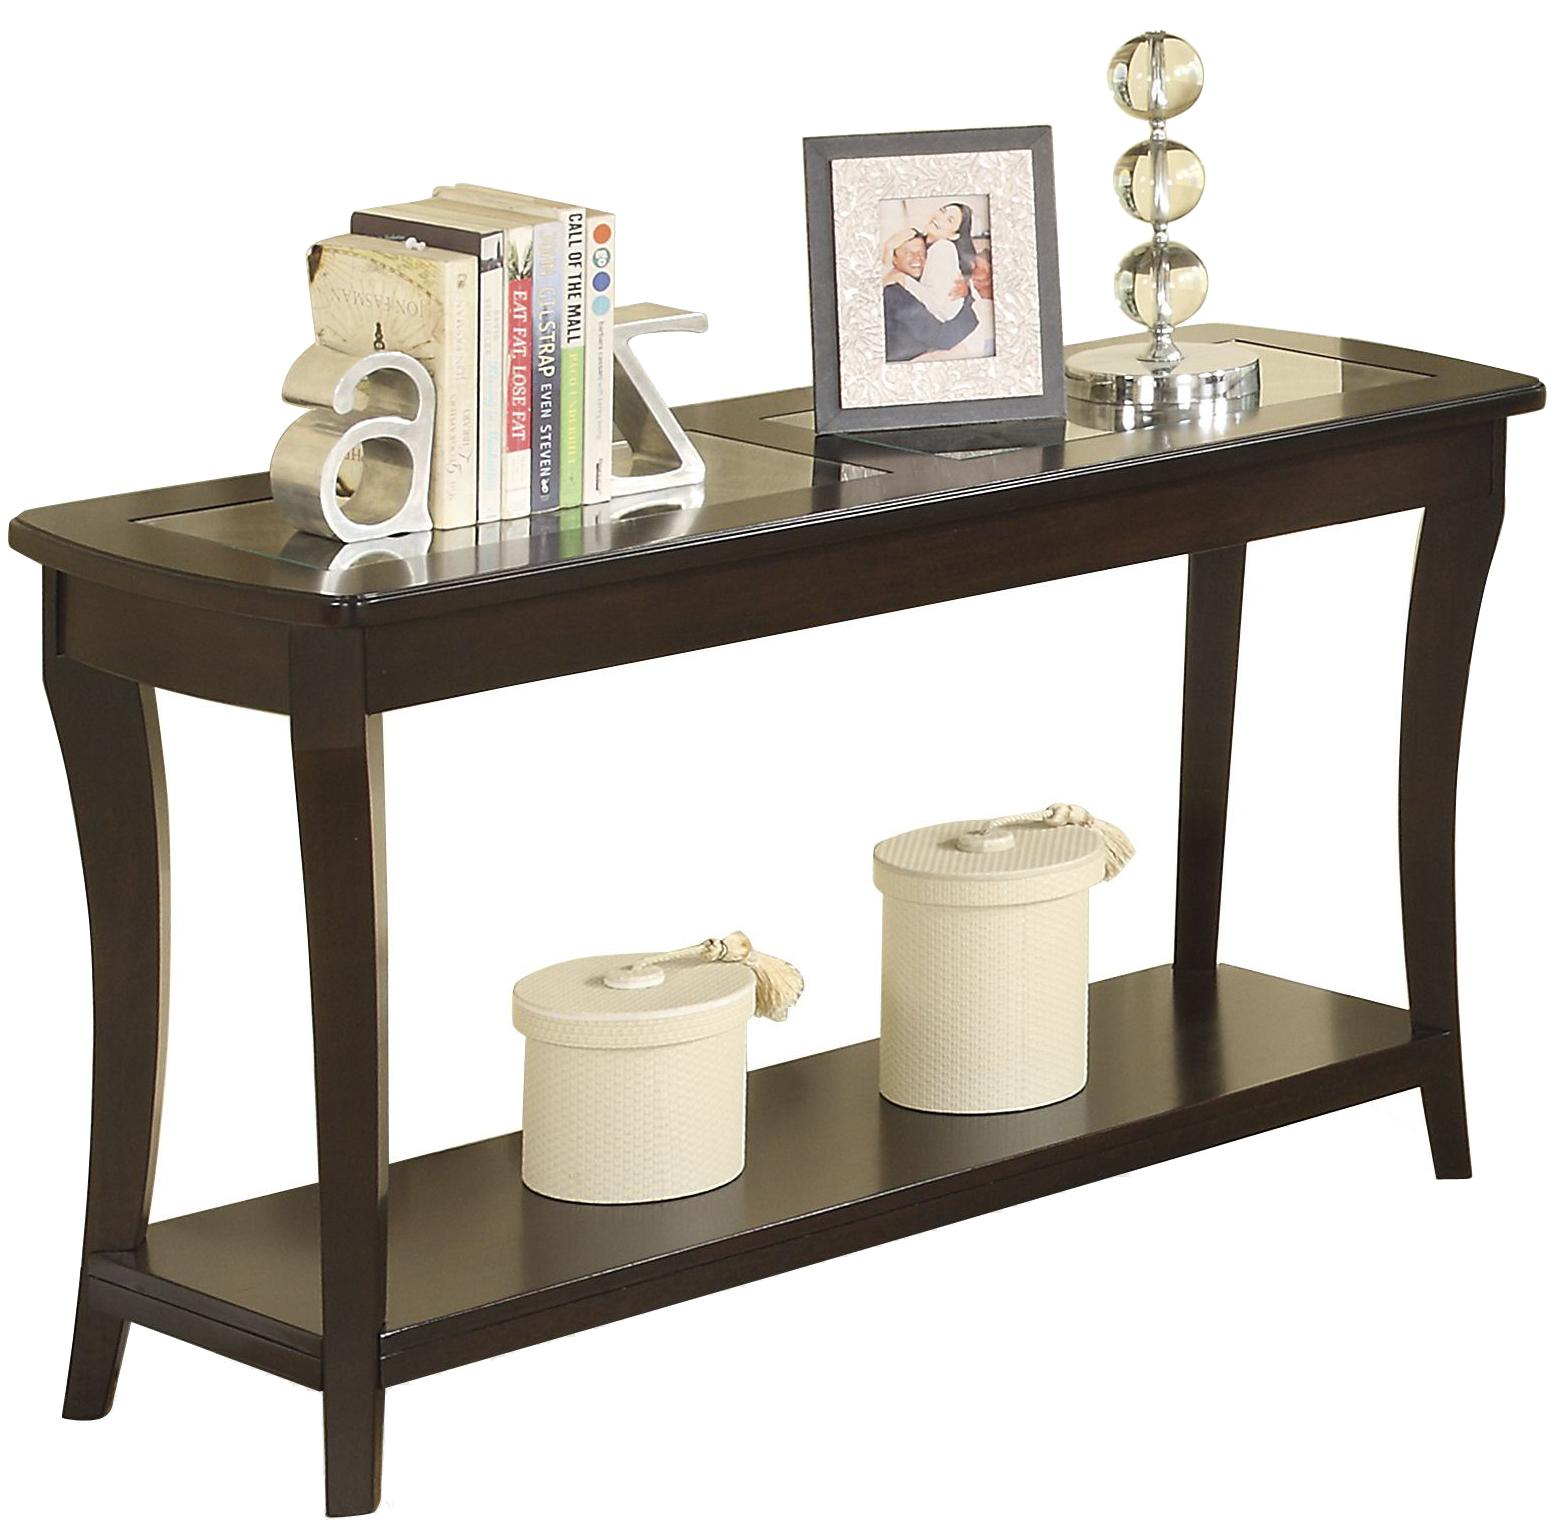 Riverside Furniture Annandale Sofa Table - Item Number: 12415